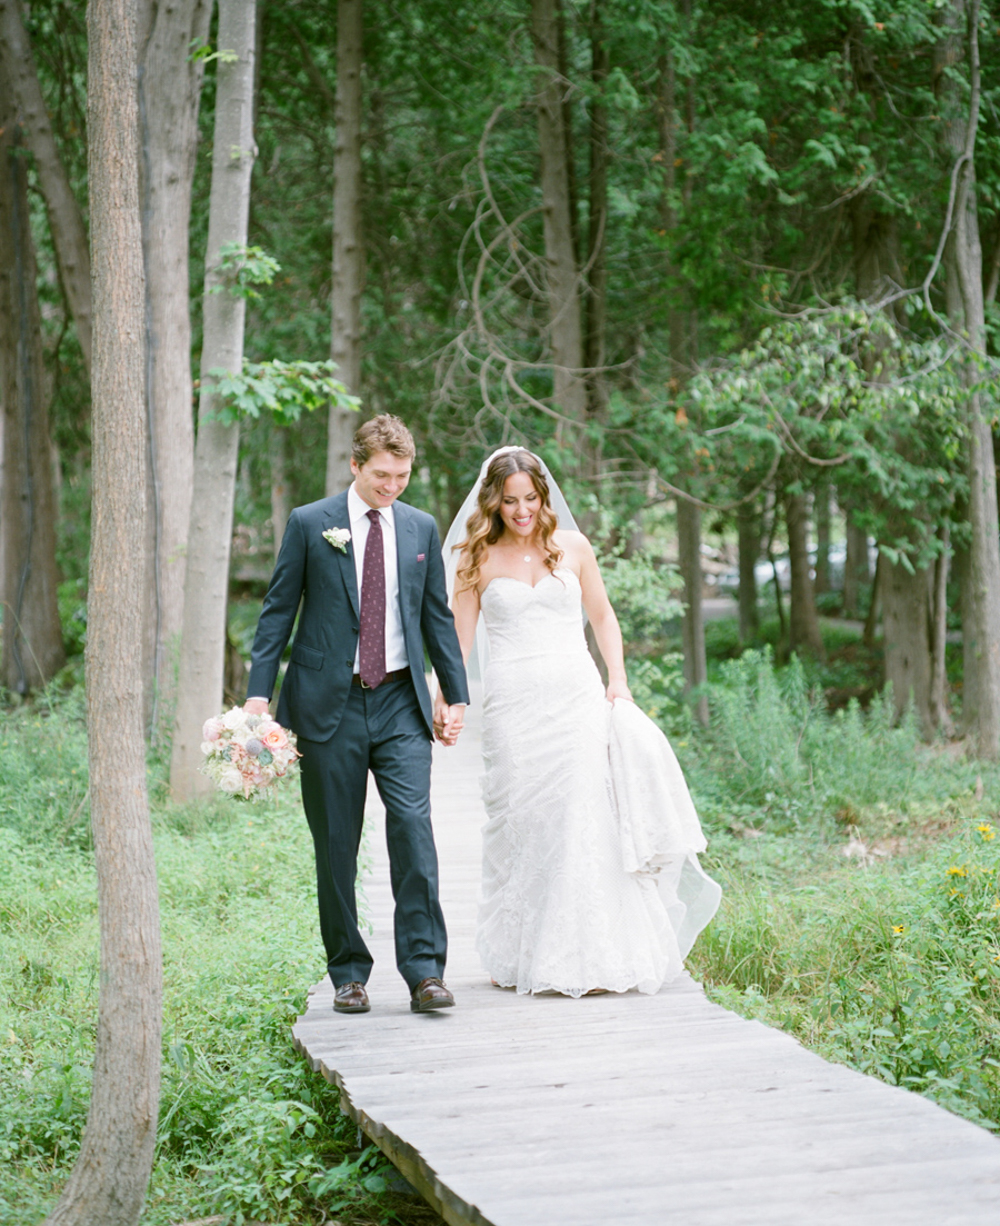 Horseshoe_Bay_Farms_Egg_Harbor_Wedding017.jpg